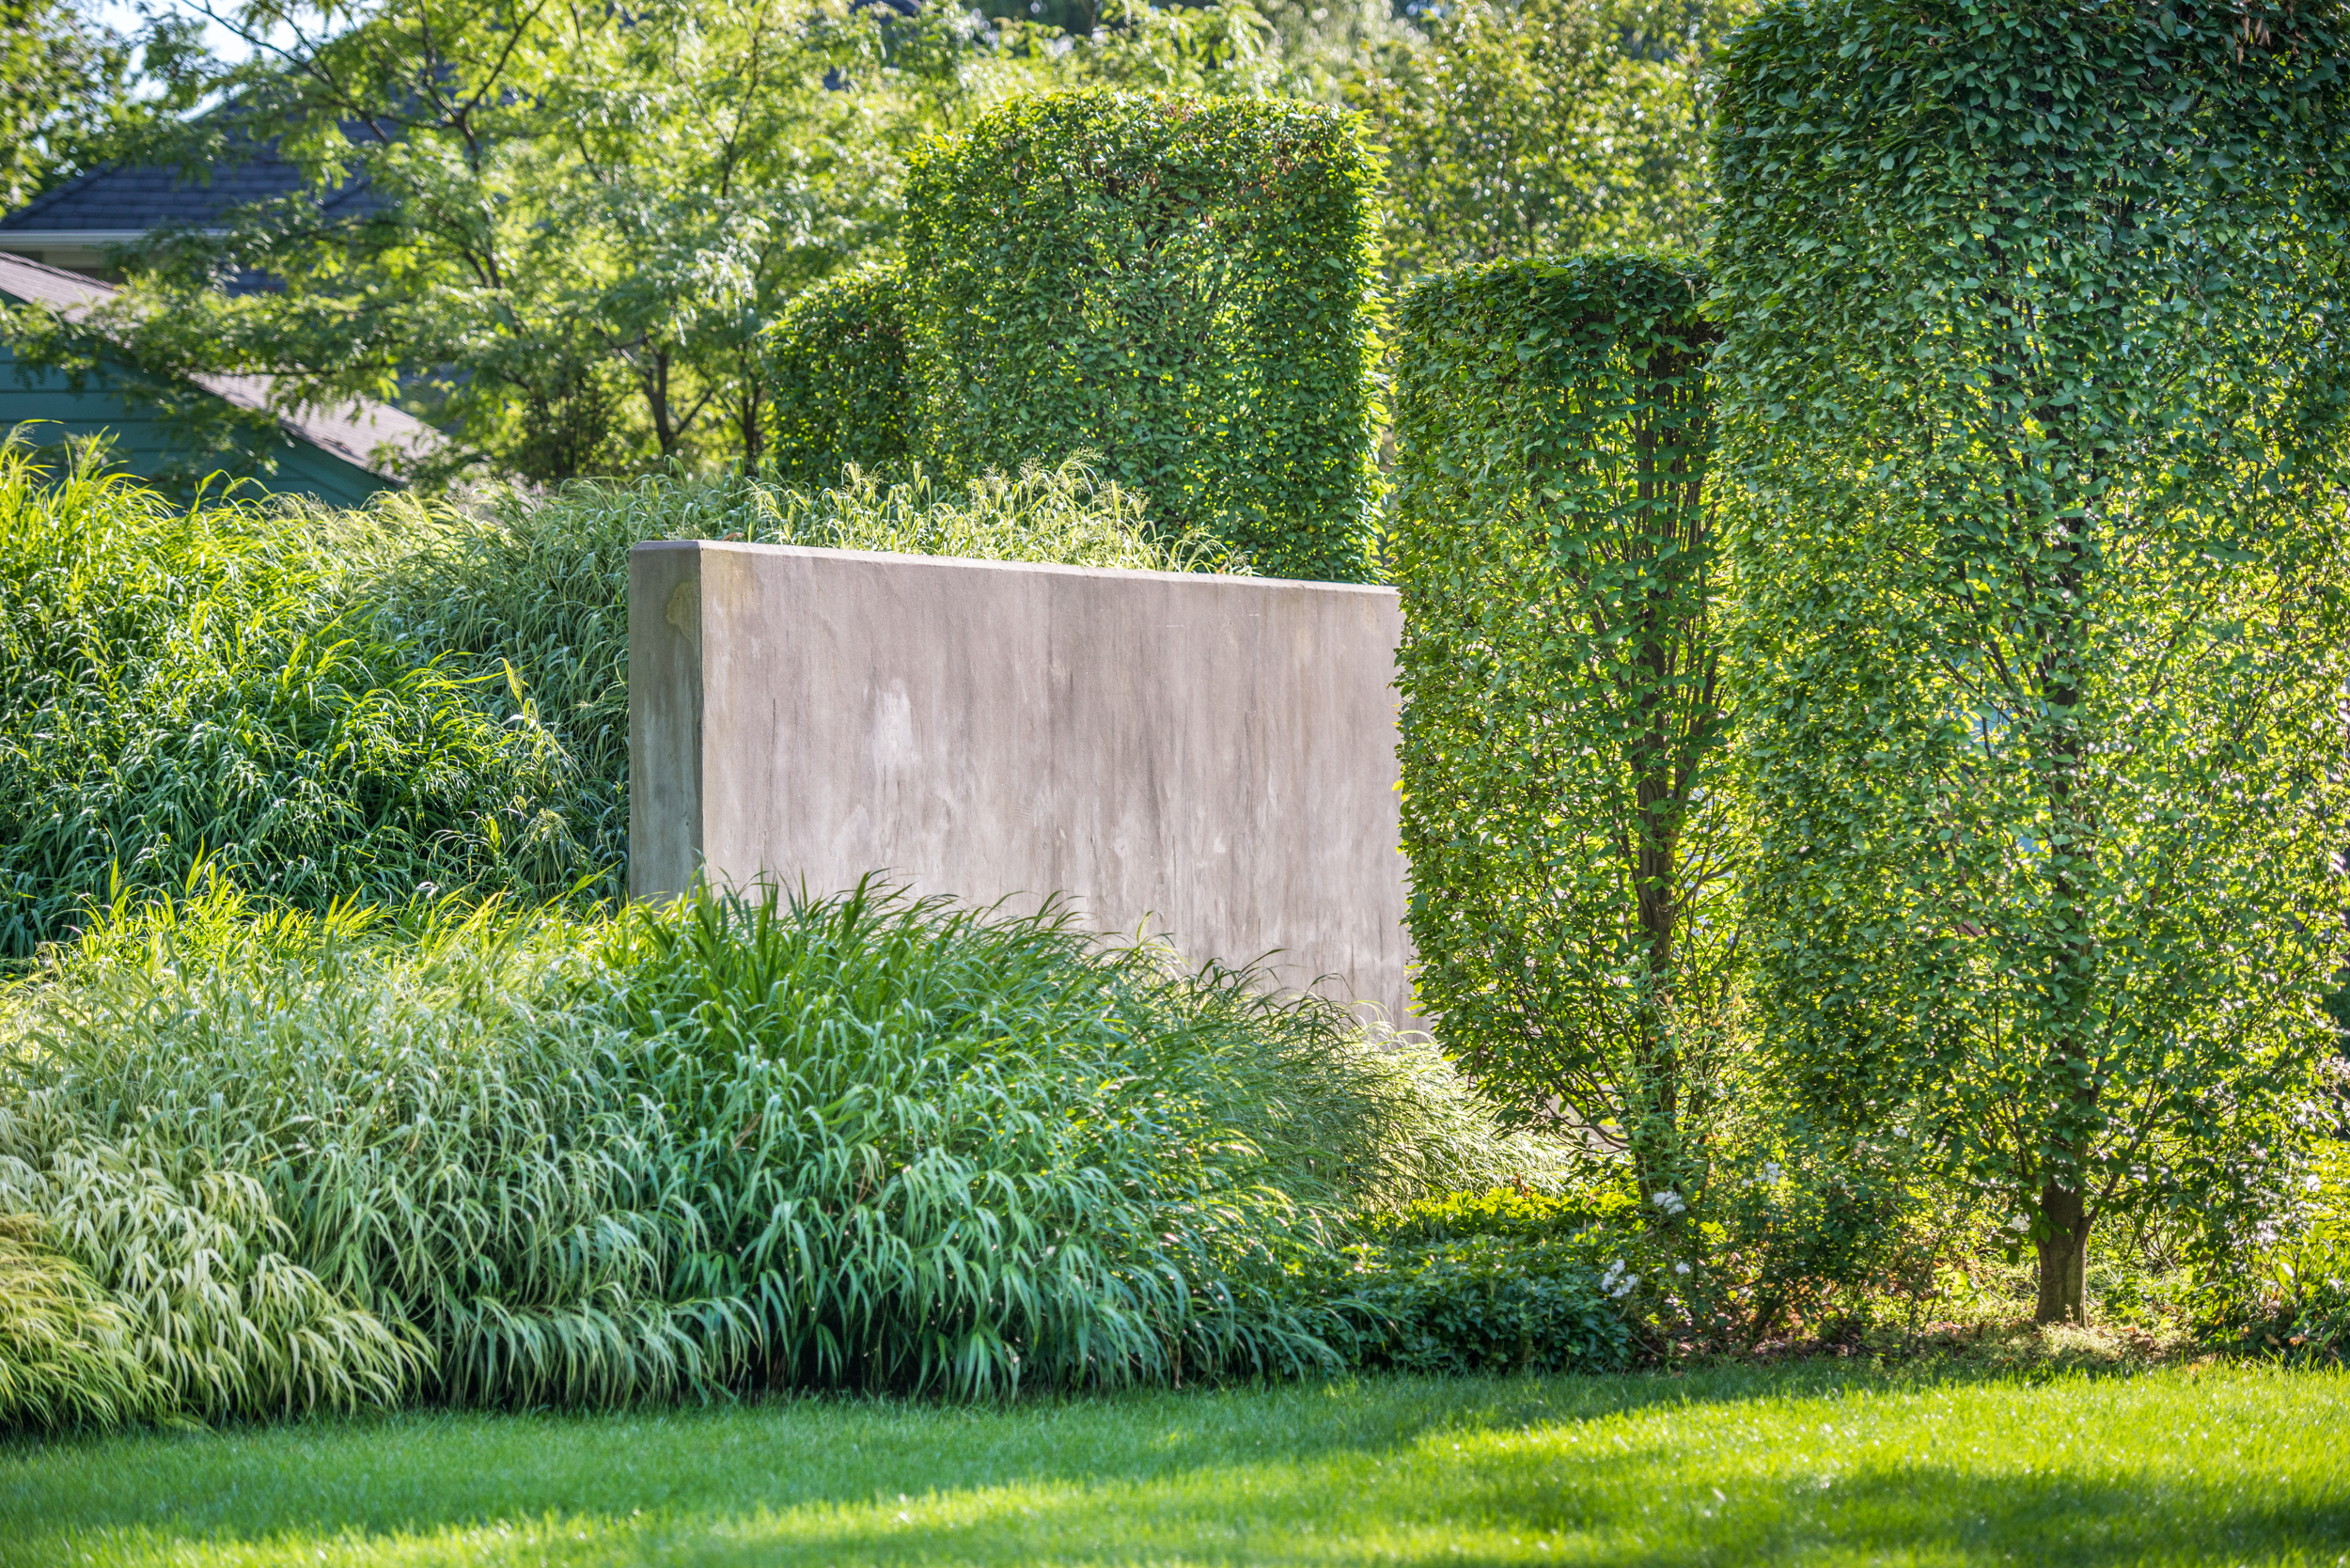 Concrete wall for dynamism and interest also serve to contain manmade berms